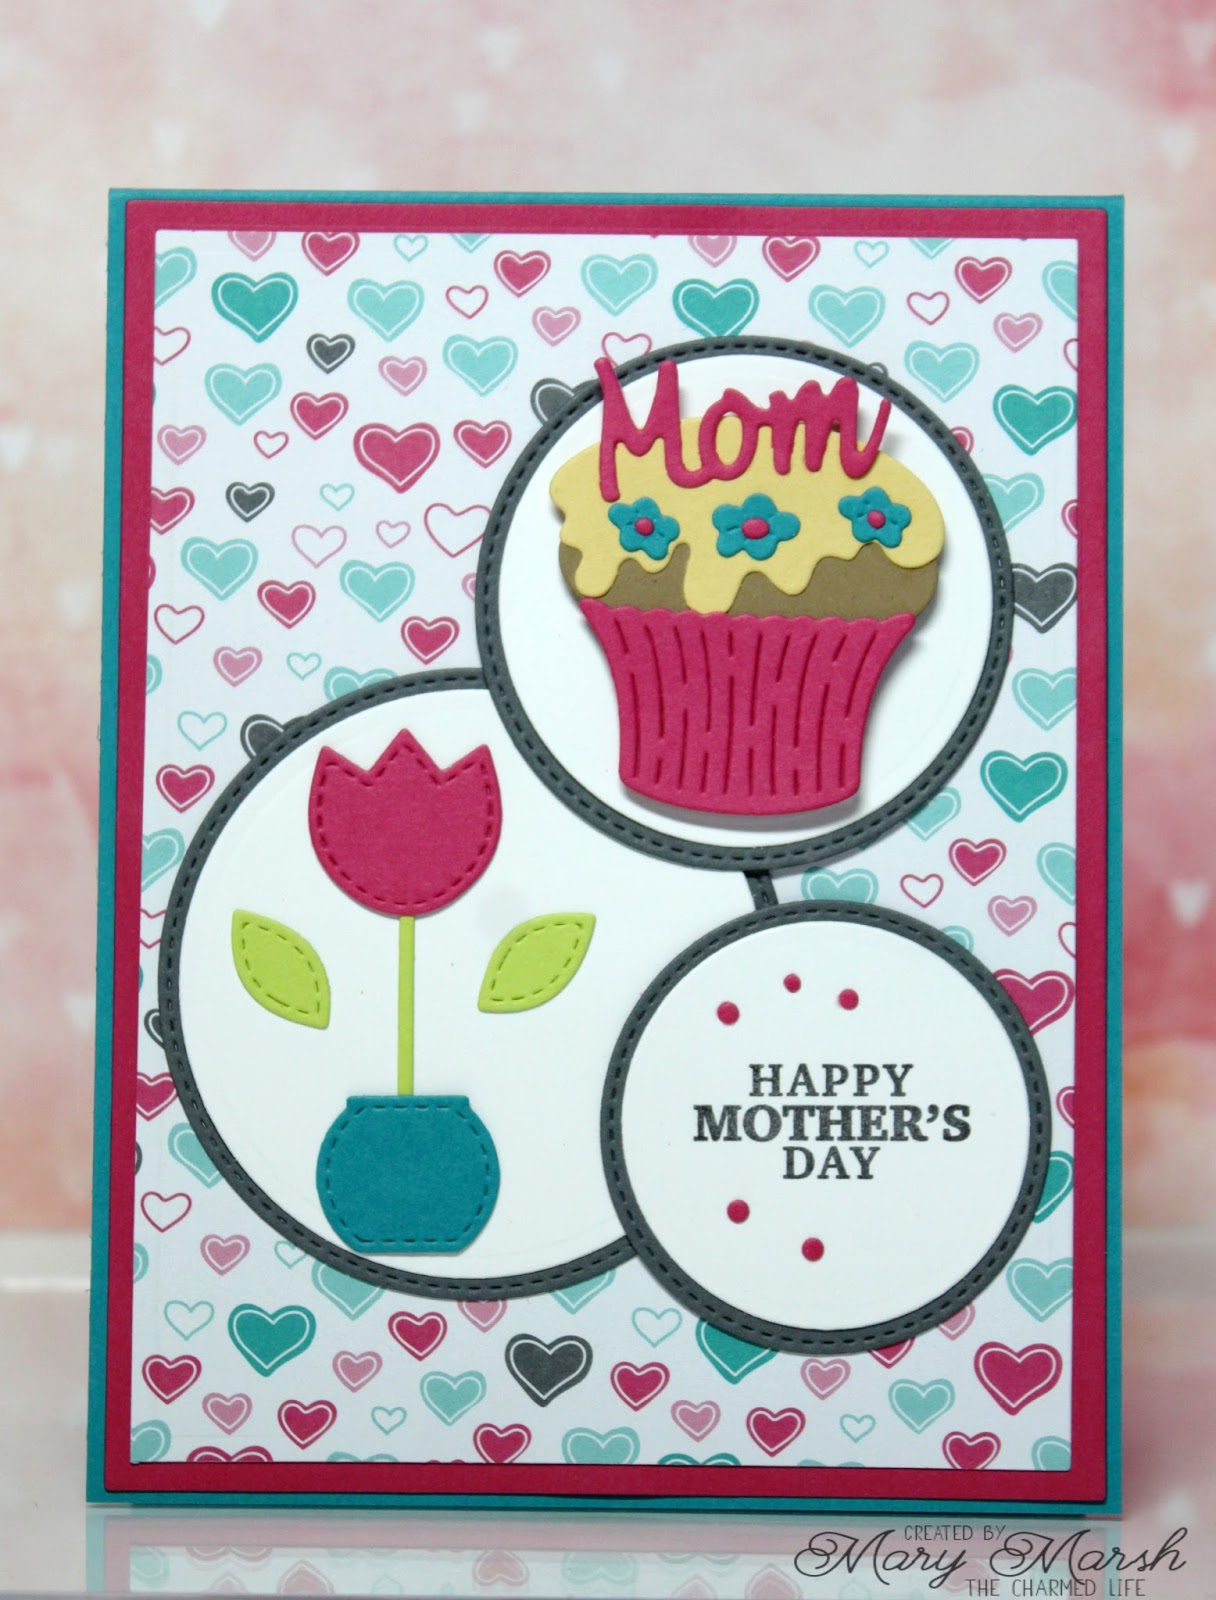 scrapping cottage Mother's Day Cupcake에 대한 이미지 검색결과